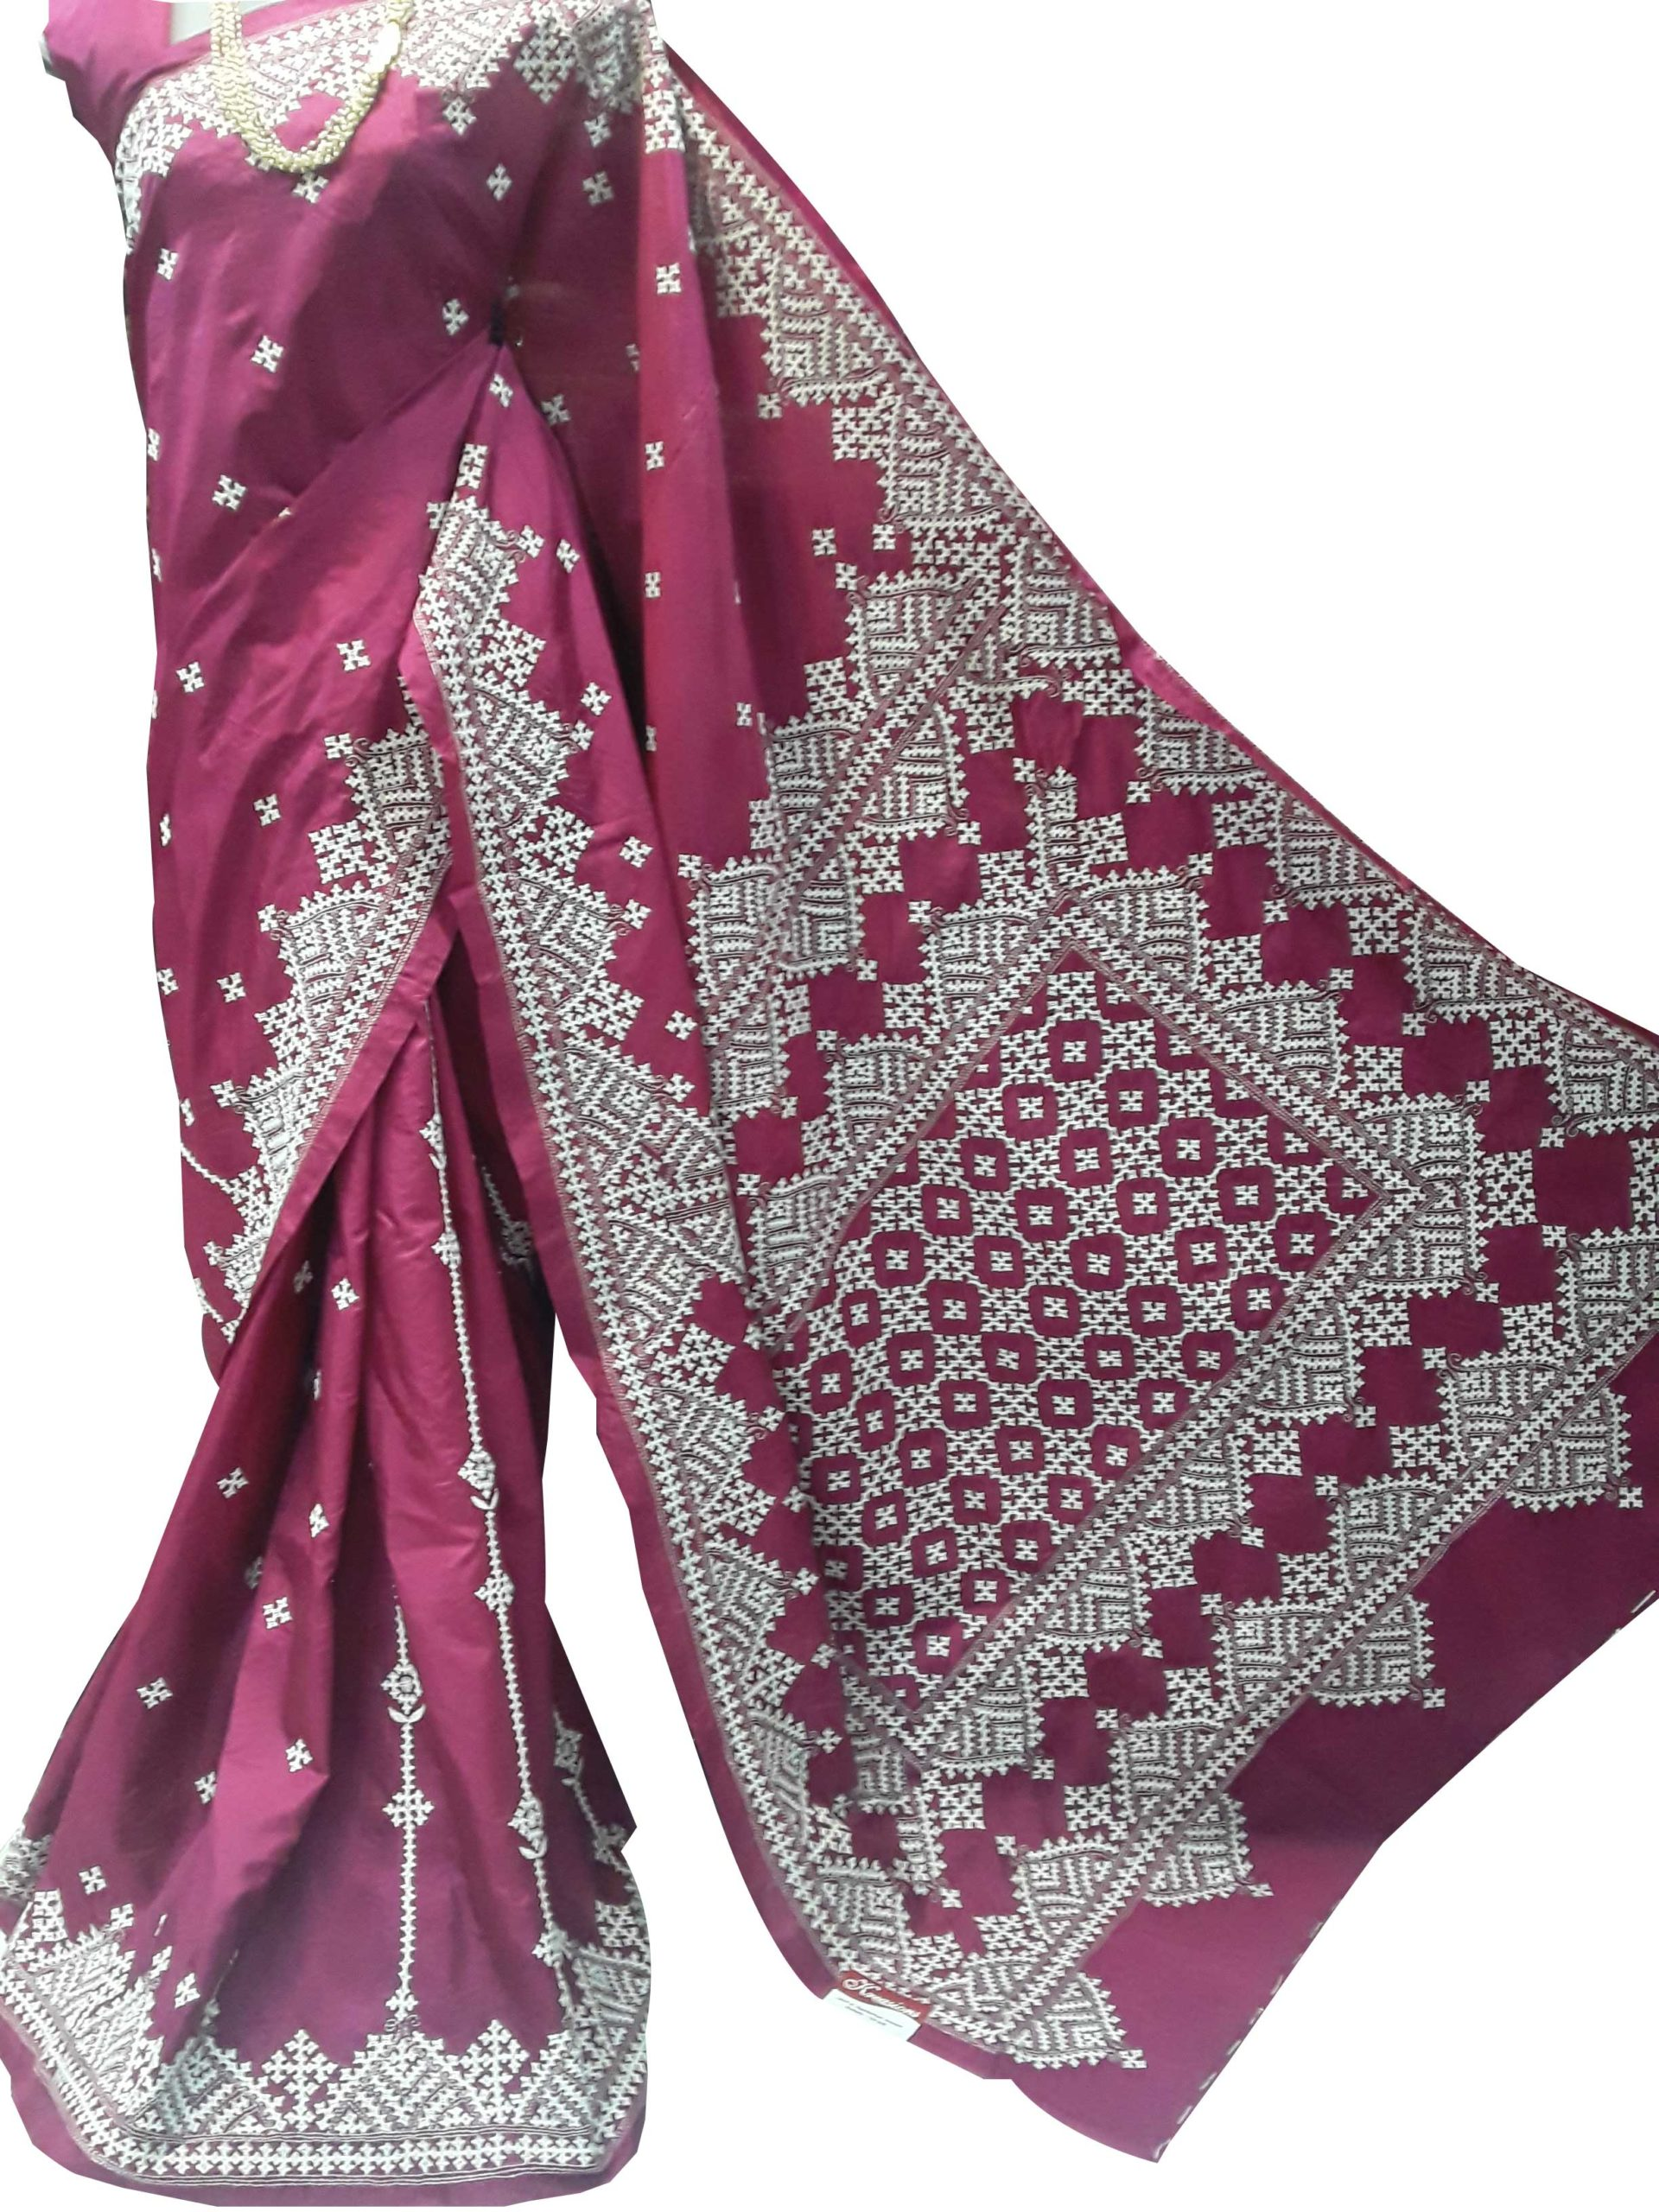 Gujrati hand embroideted Sarees 3